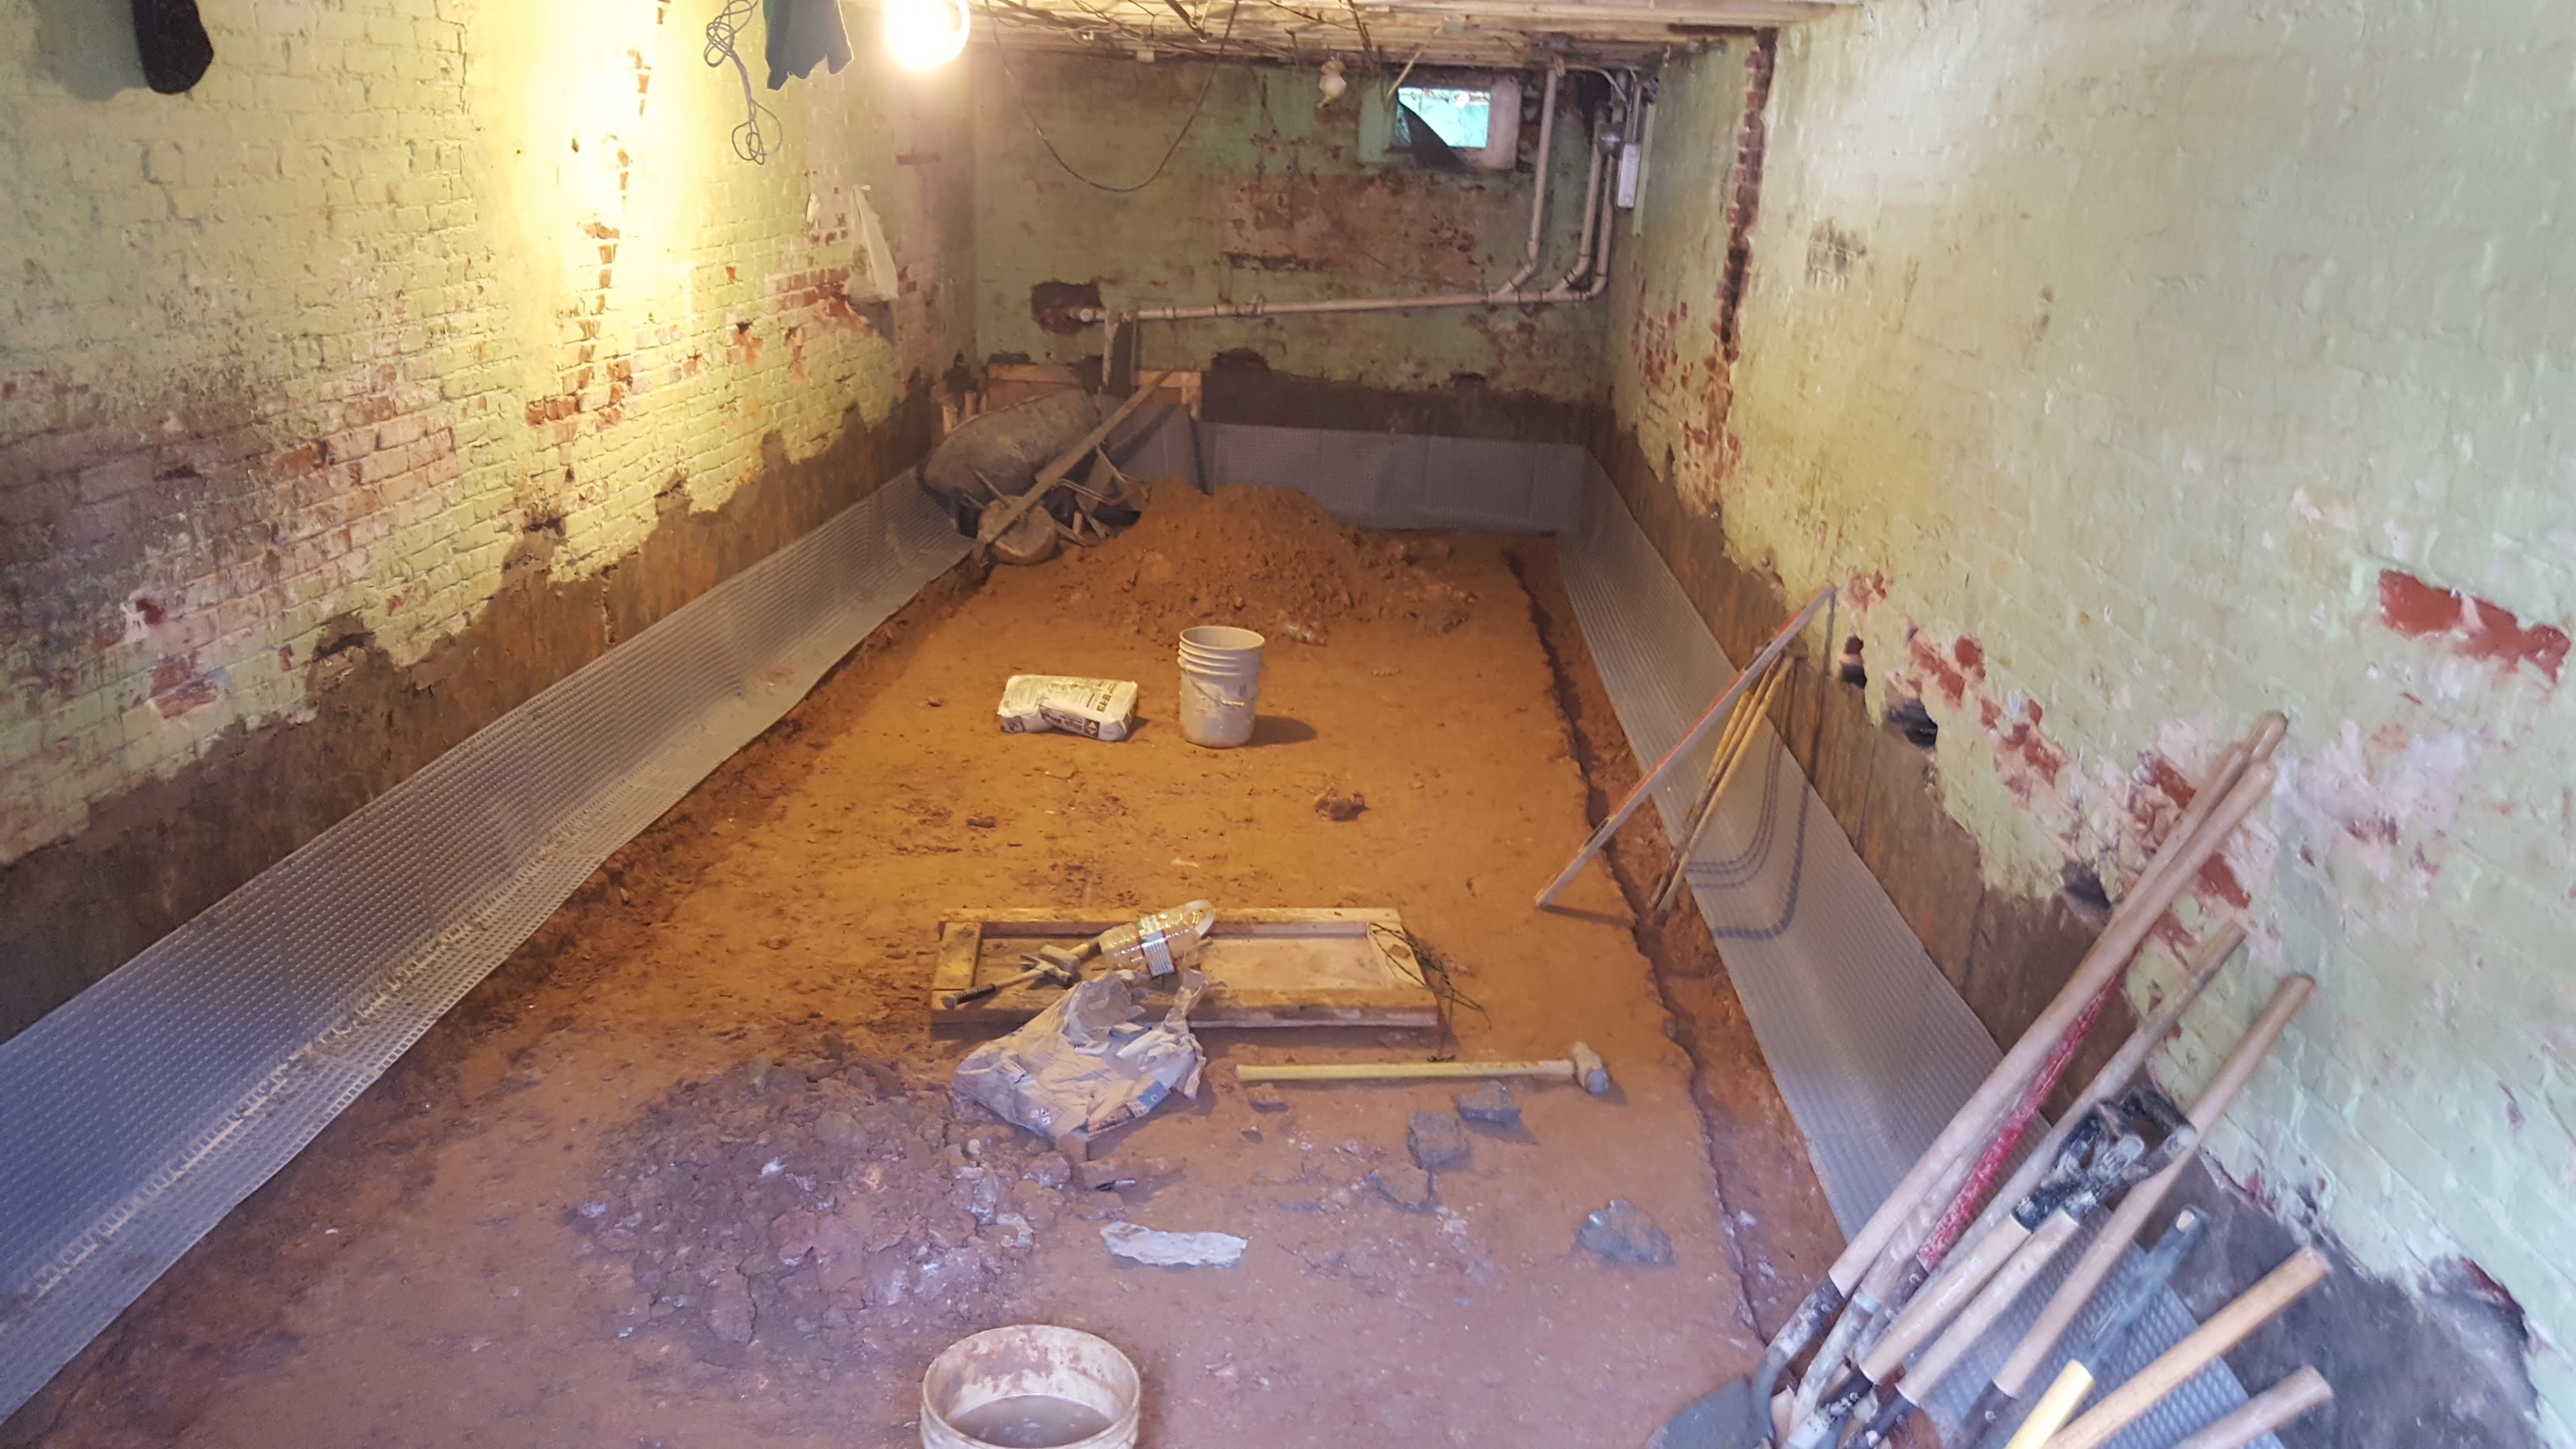 Digging Basements Adding New Height To Low Ceilings By Underpinning Potomac Real Estate And